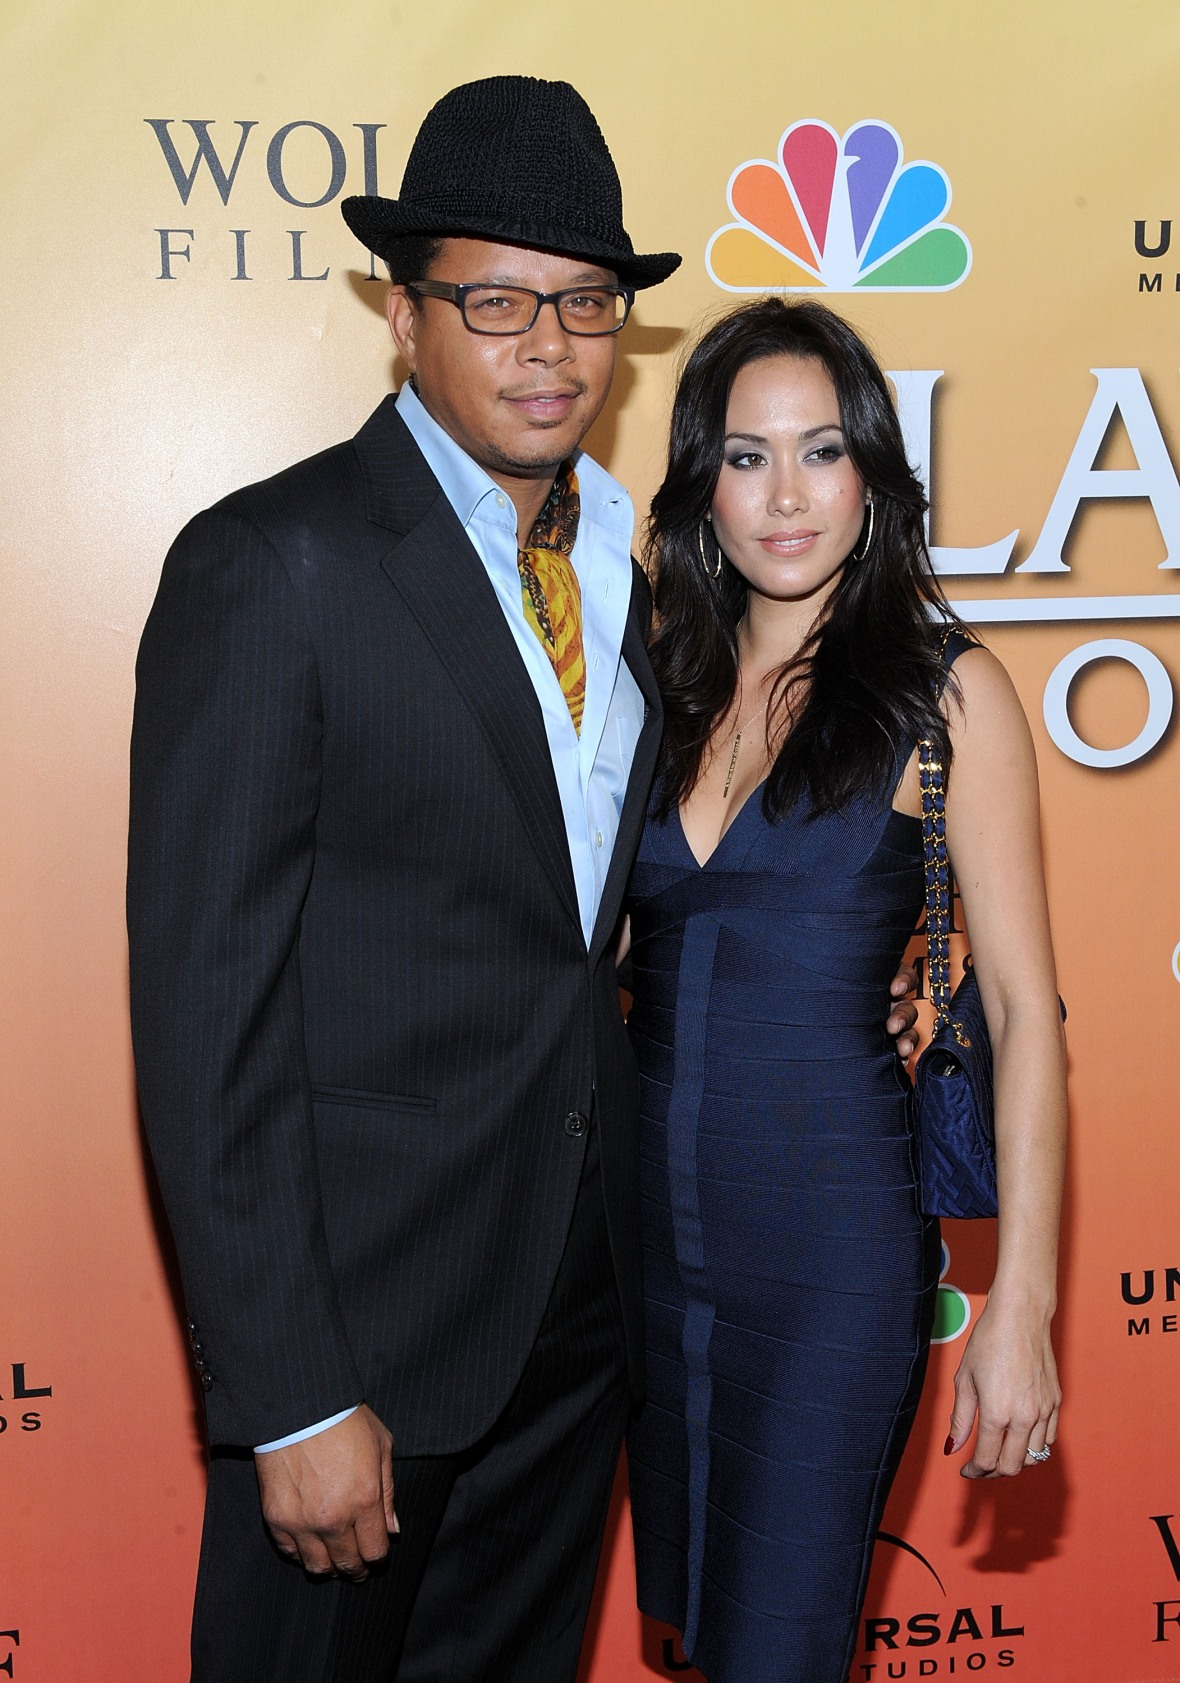 Judge Calls Terrence Howard a Bully but Rules in His Favor